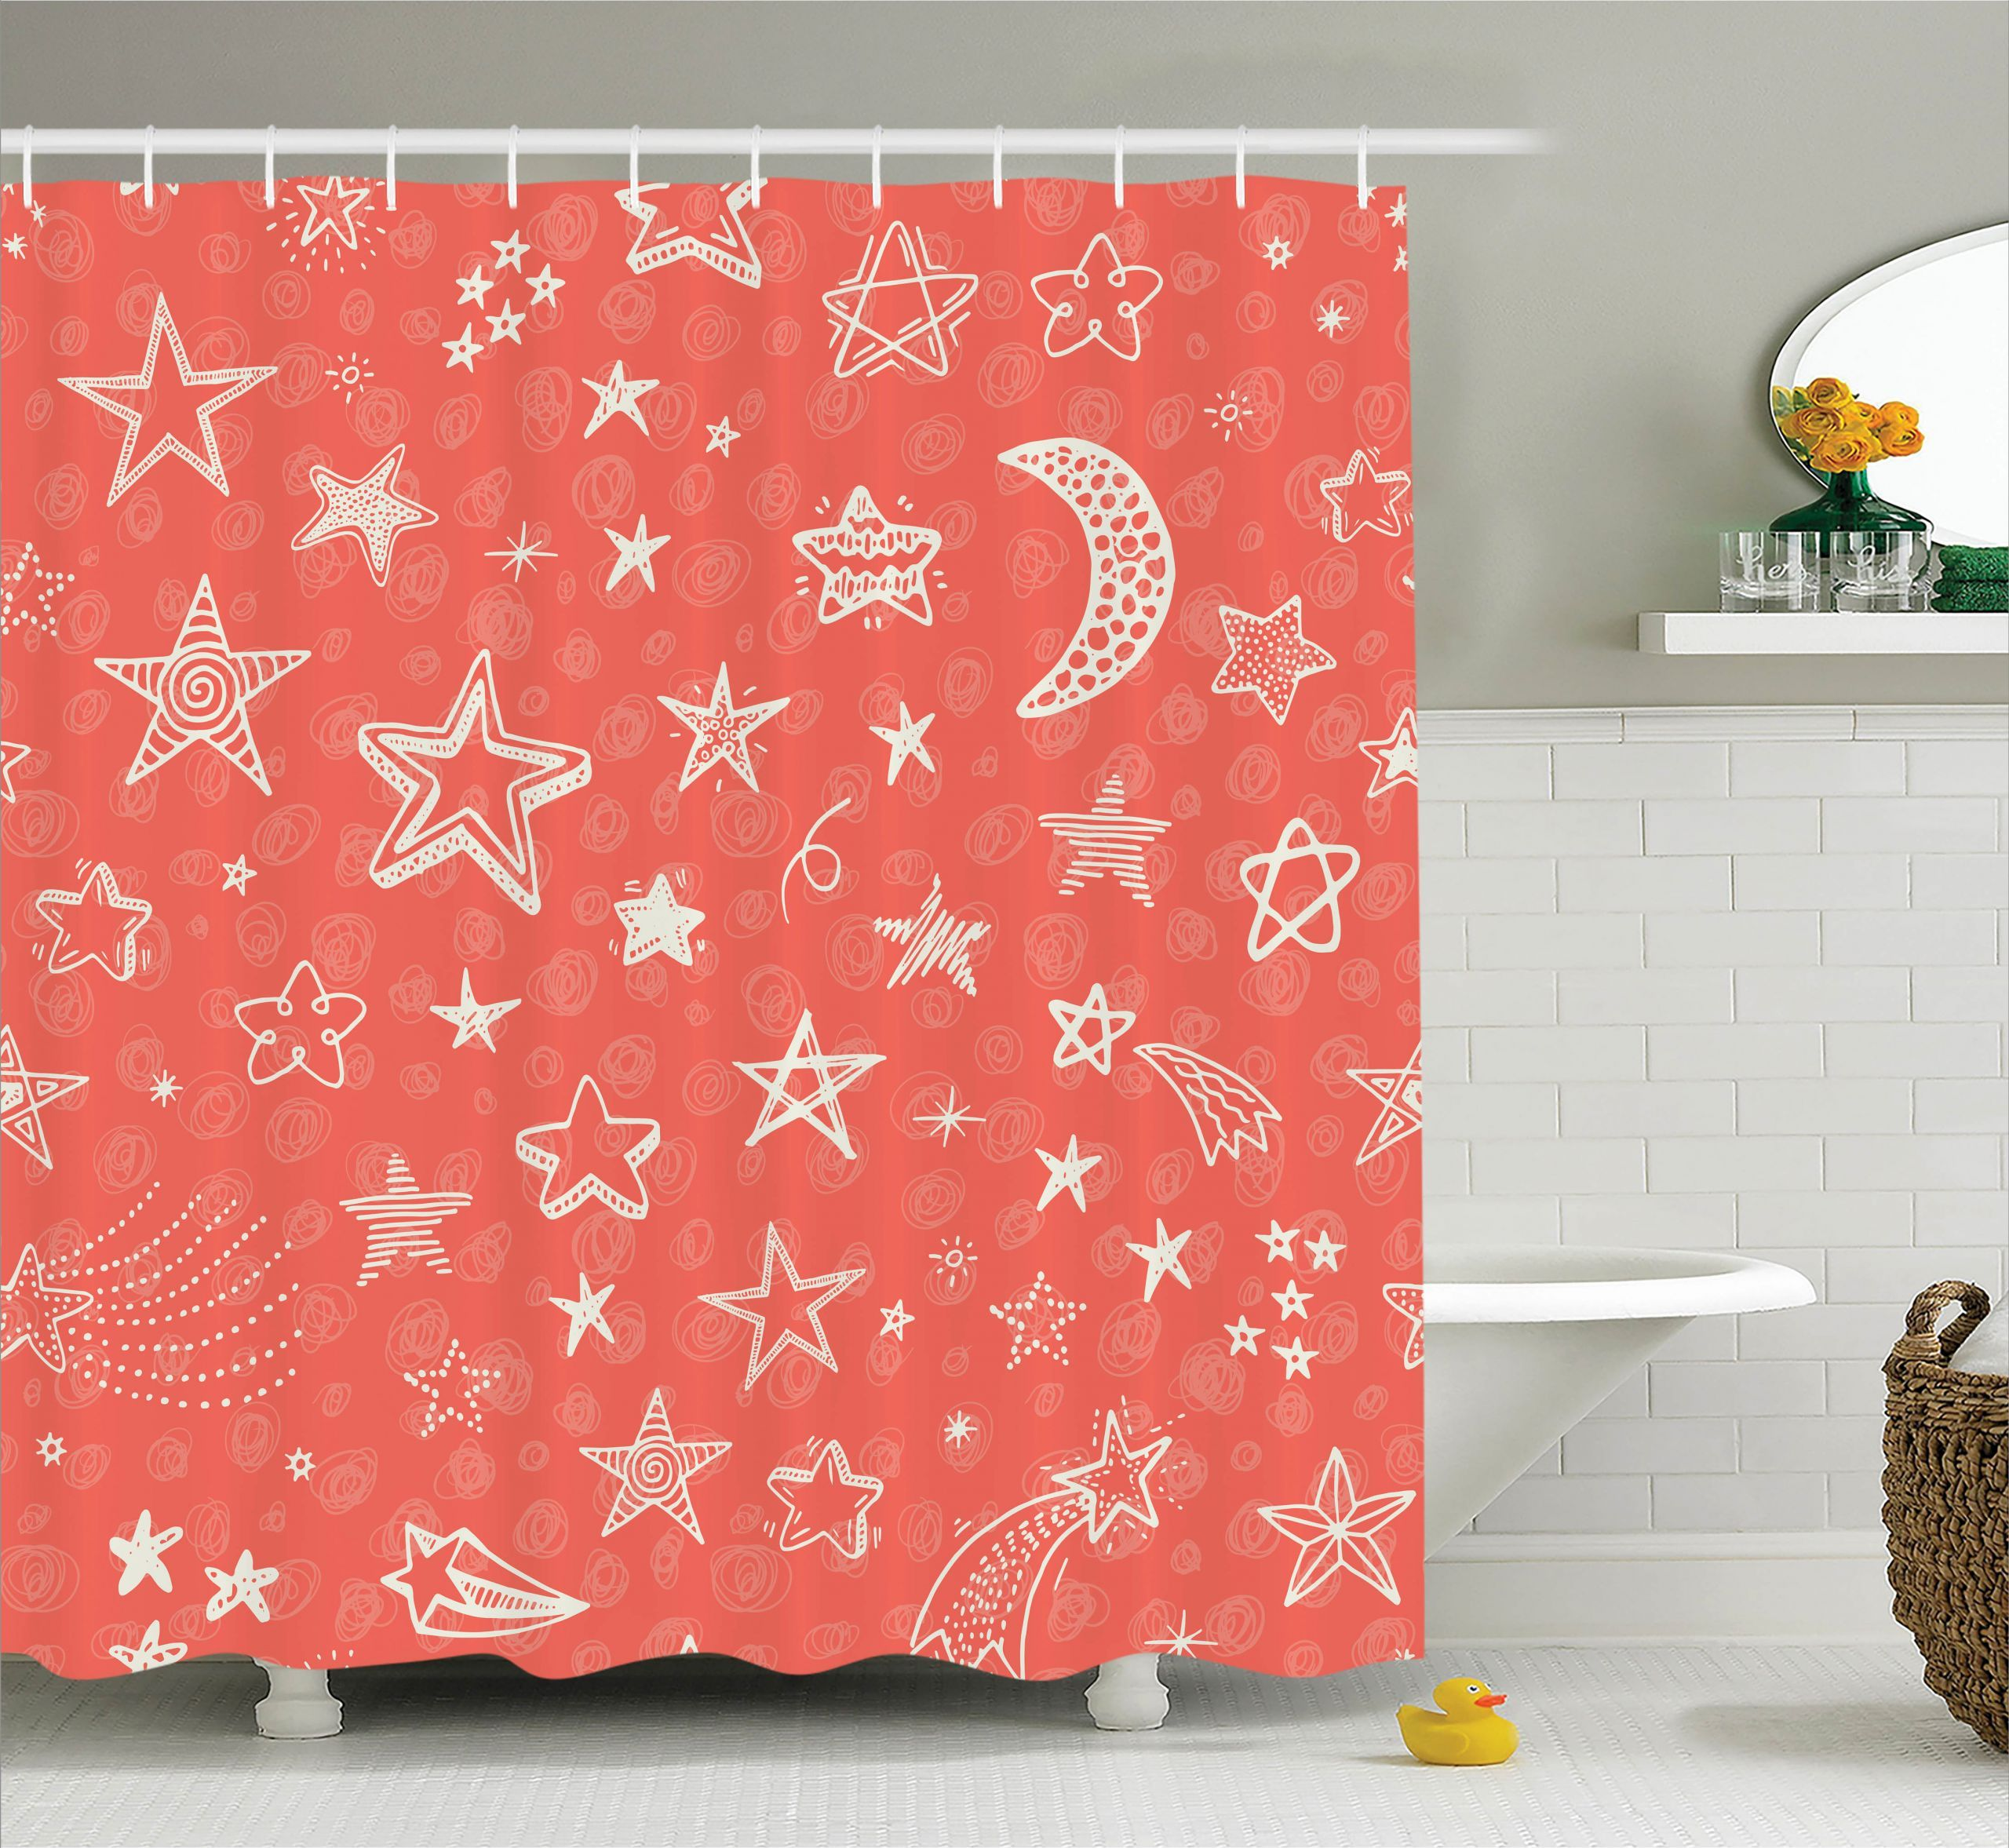 24 Moon And Star Bathroom Decor In 2020 Shower Curtain Sizes Kids Doodles Space Stars